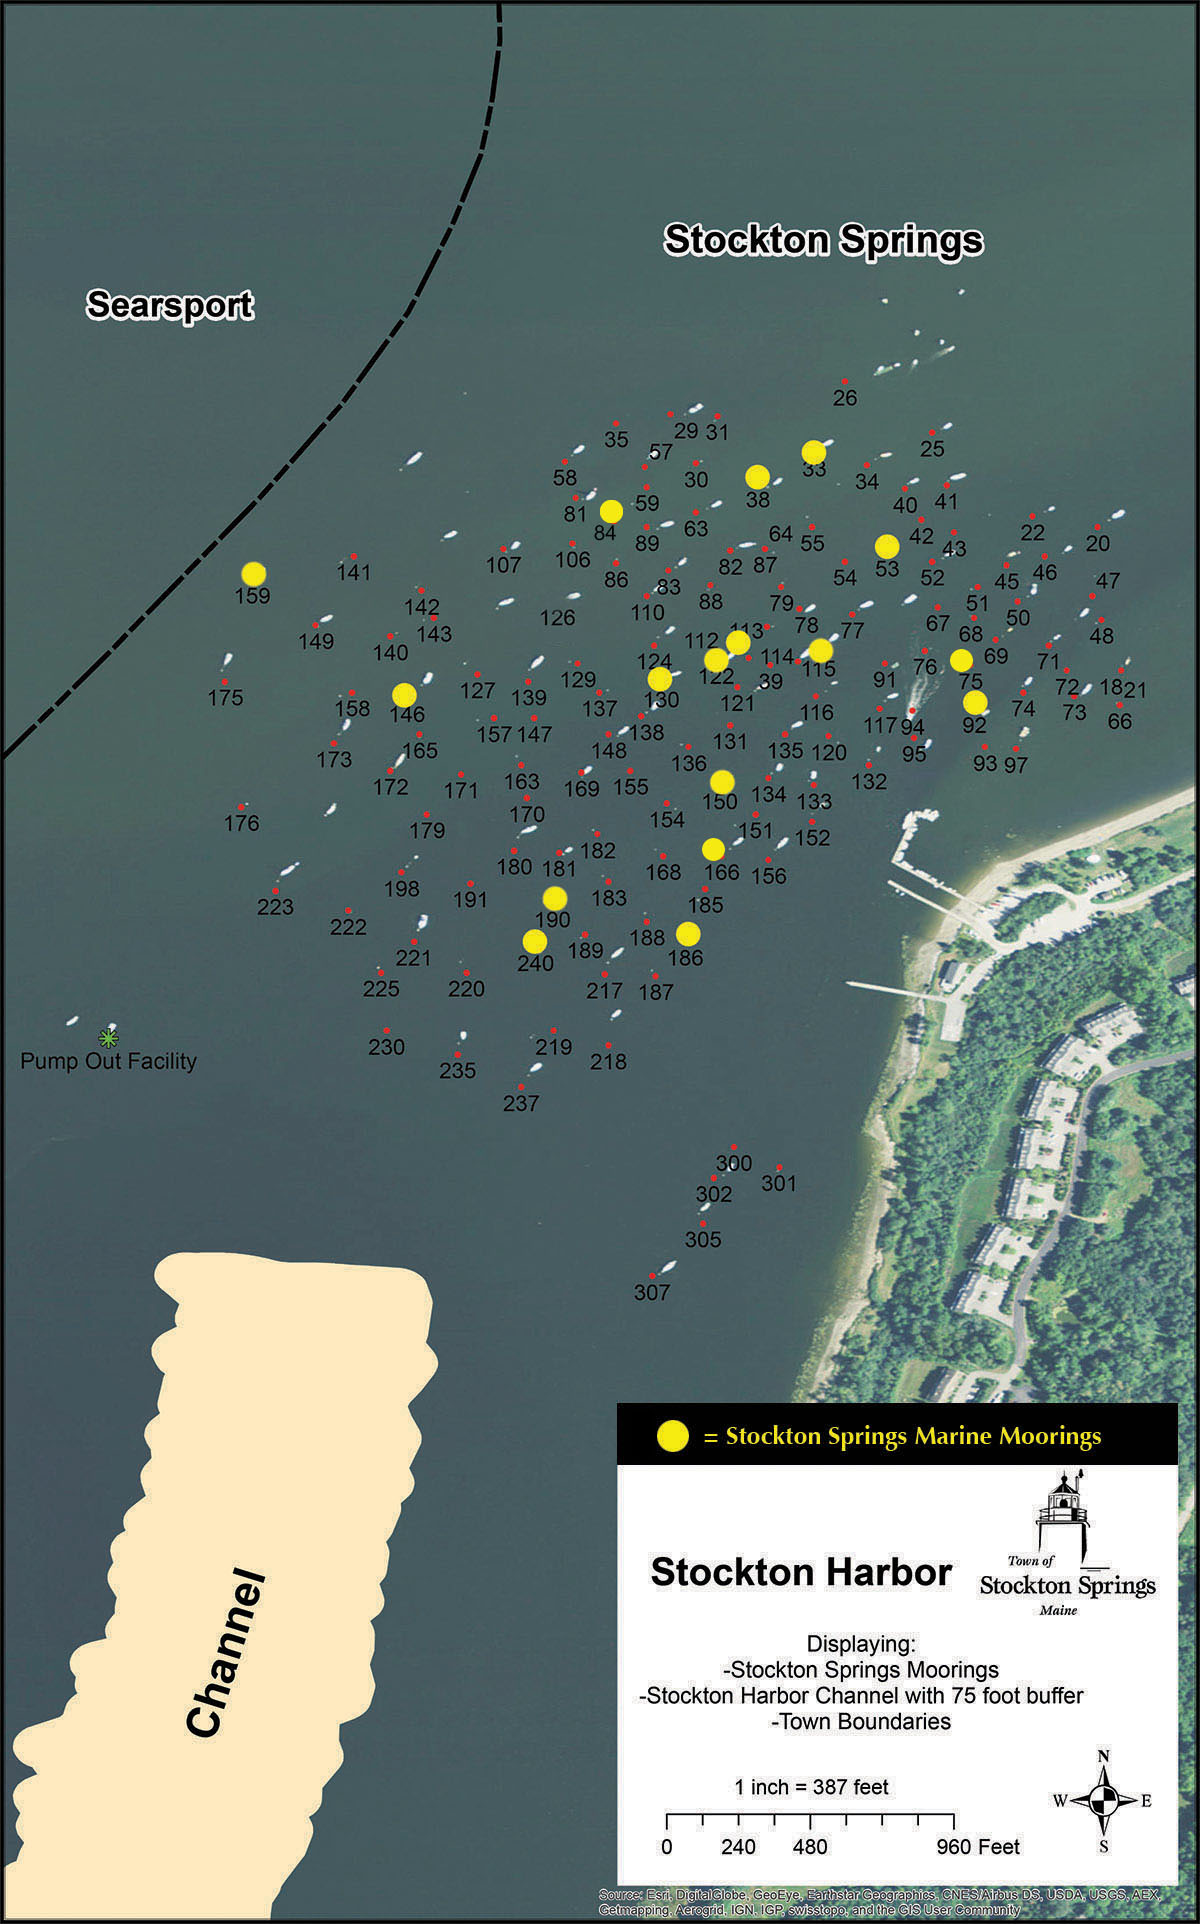 Stockton Springs Marine mooring map